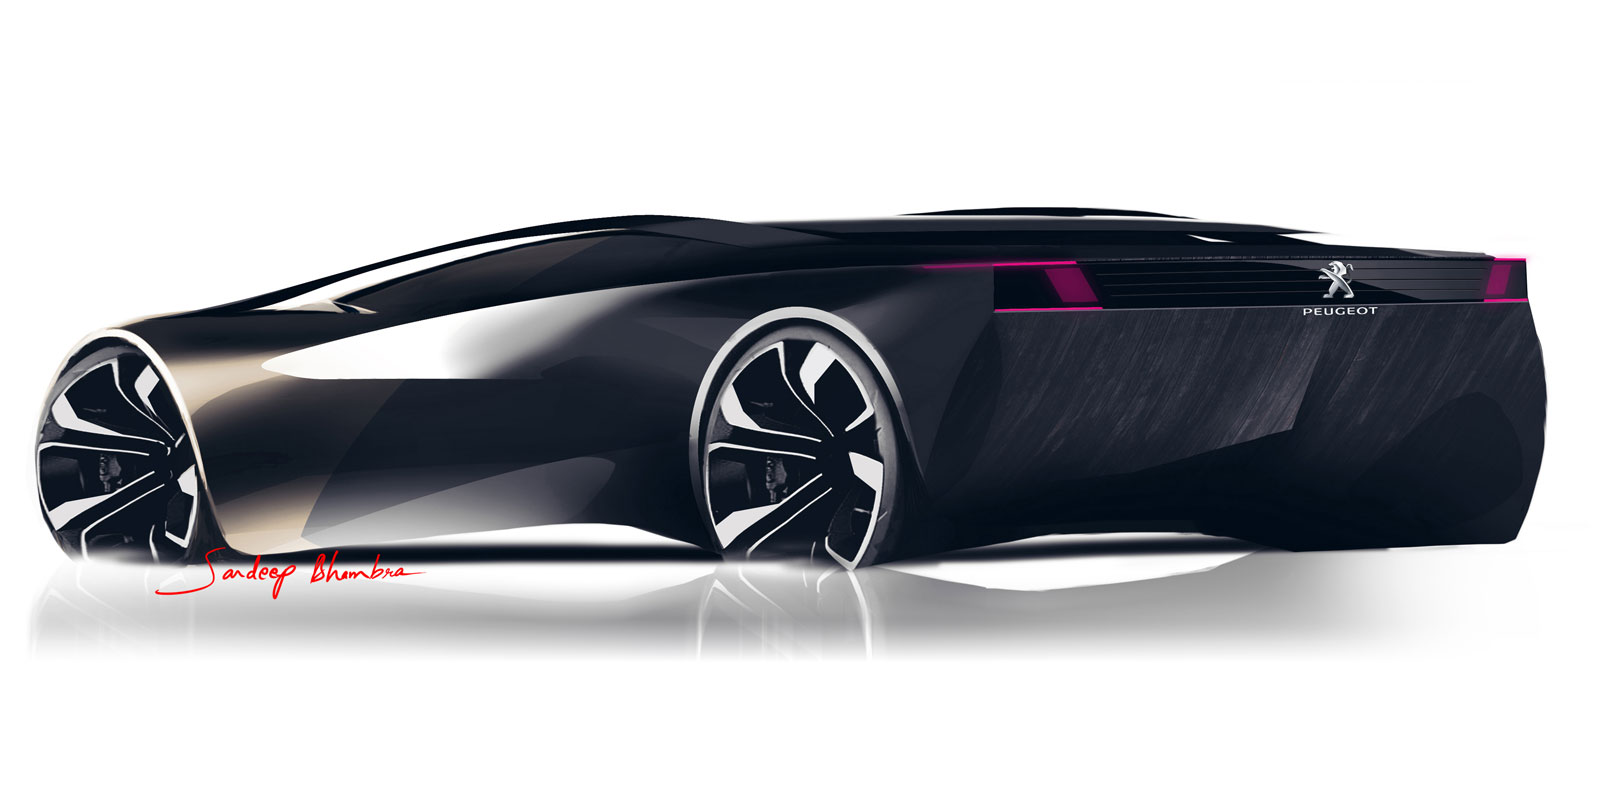 Lamborghini Hints New Car Paris Motor Show together with Peugeot Onyx Concept 2012 in addition Watch as well Cinelli Laser Pista Concept further Lets Build New Lego Speed Ch ions Mclaren 720s. on lamborghini sketch